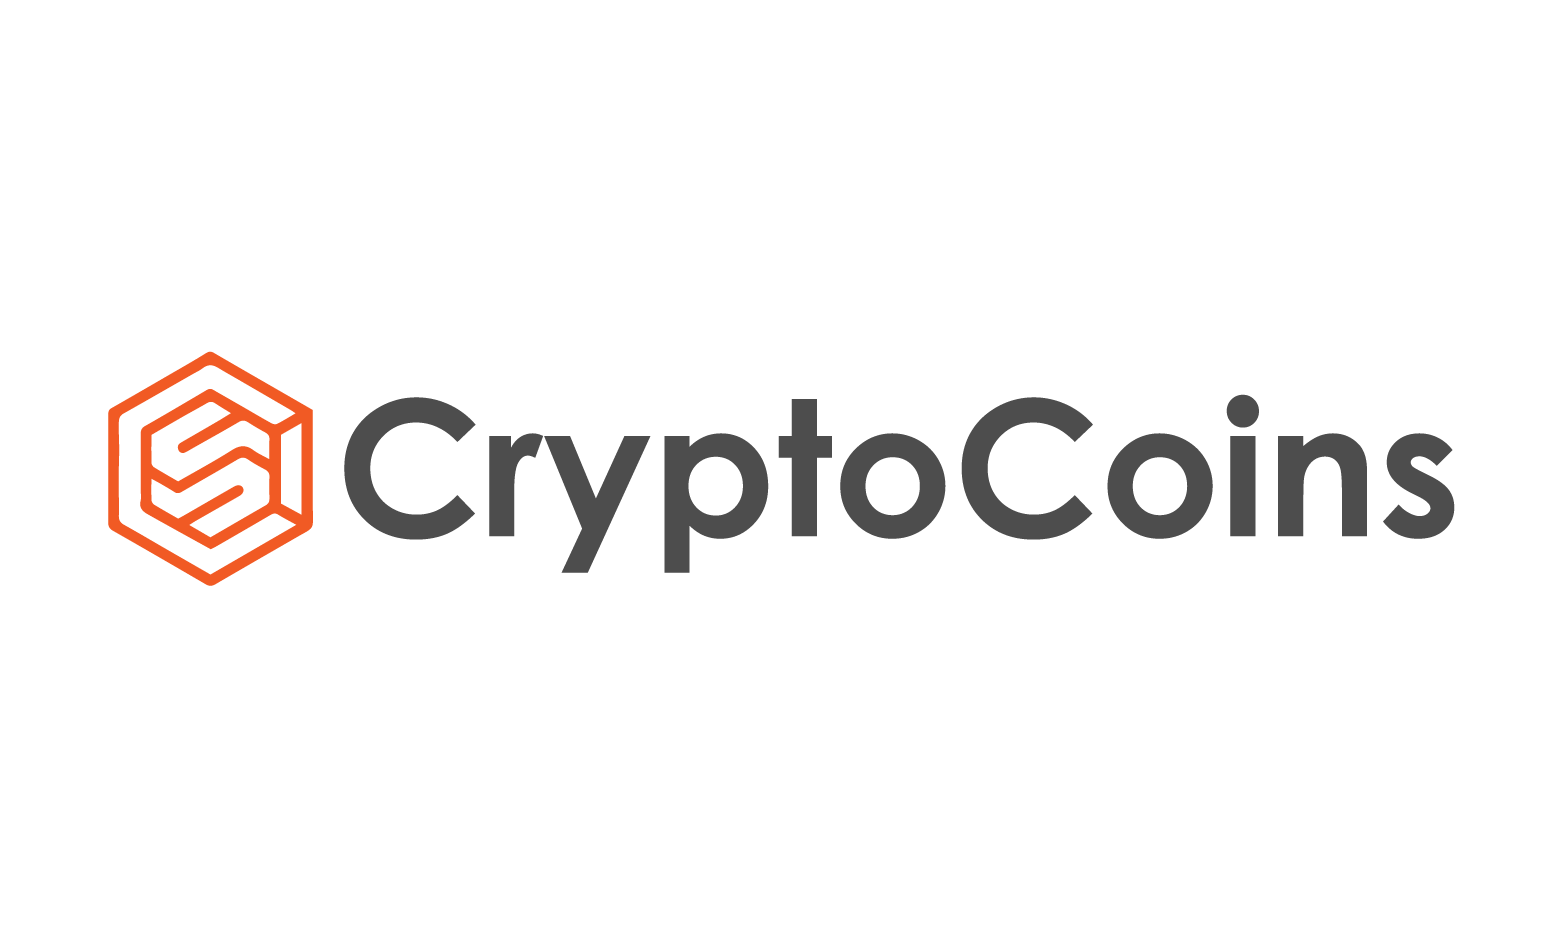 CryptoCoins.co